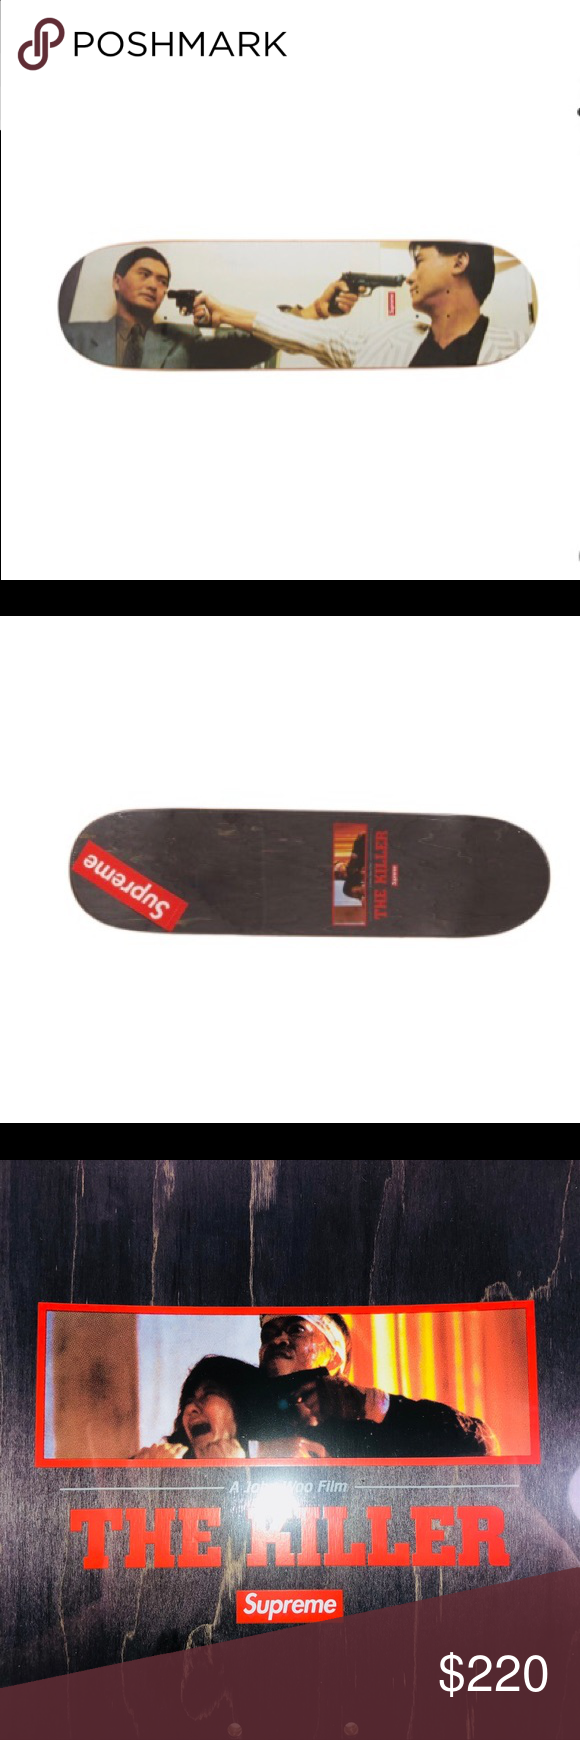 9a70ca91 Supreme The Killer Skateboard Deck Size 8.5 FW18 New With Tags Deadstock  See Pictures For Details. Supreme The Killer Skateboard Deck Multicolor  Size 8.5 ...